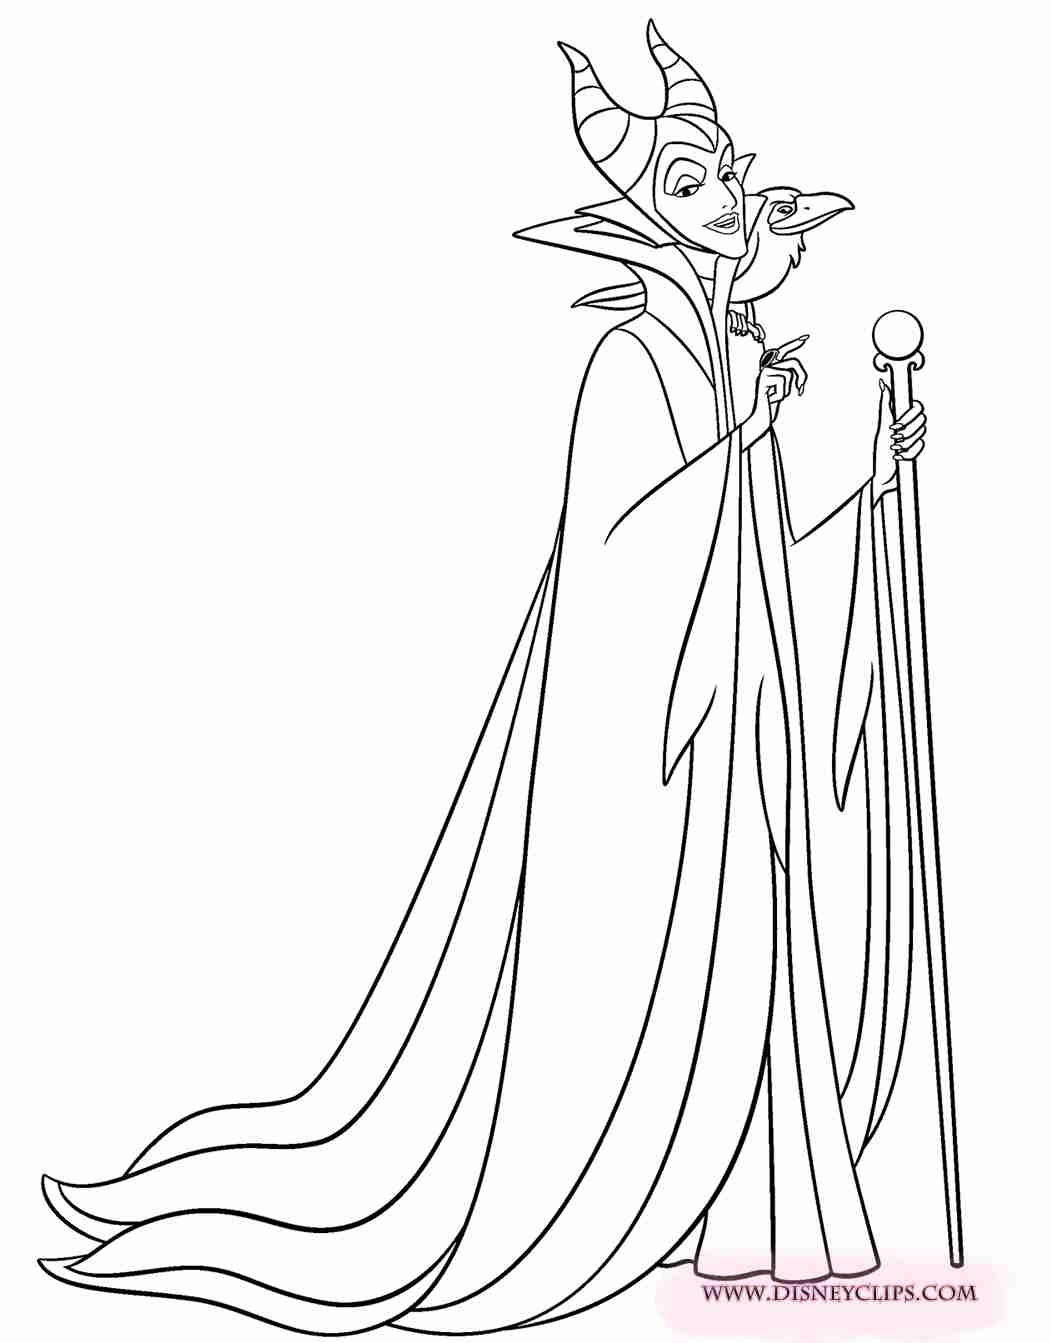 1051x1343 Elegant Disney Maleficent Coloring Pages Download With Olegratiy